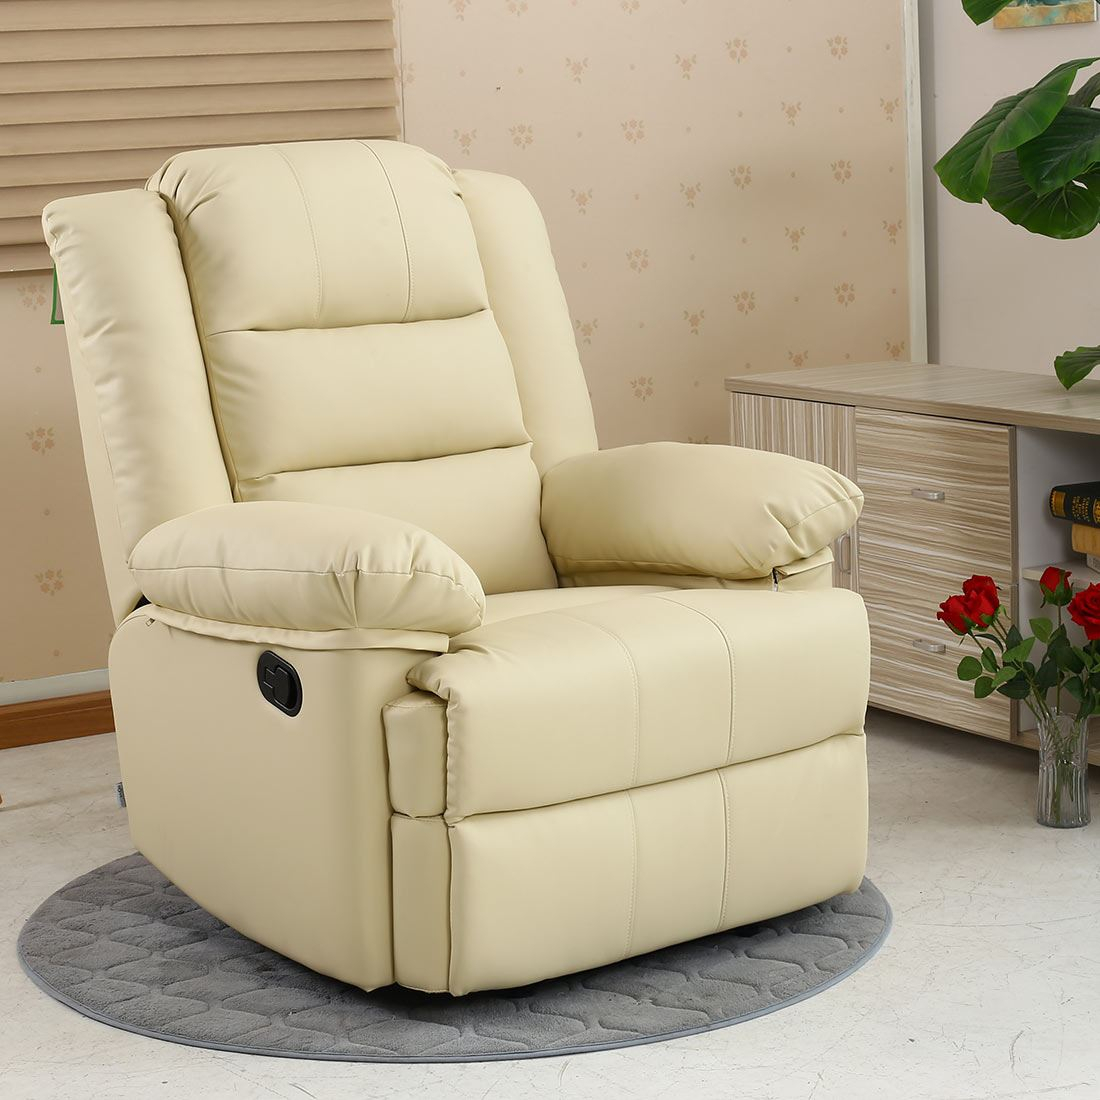 Loxley Leather Recliner Armchair Sofa Home Lounge Chair Within Sofa Lounge Chairs (View 1 of 15)